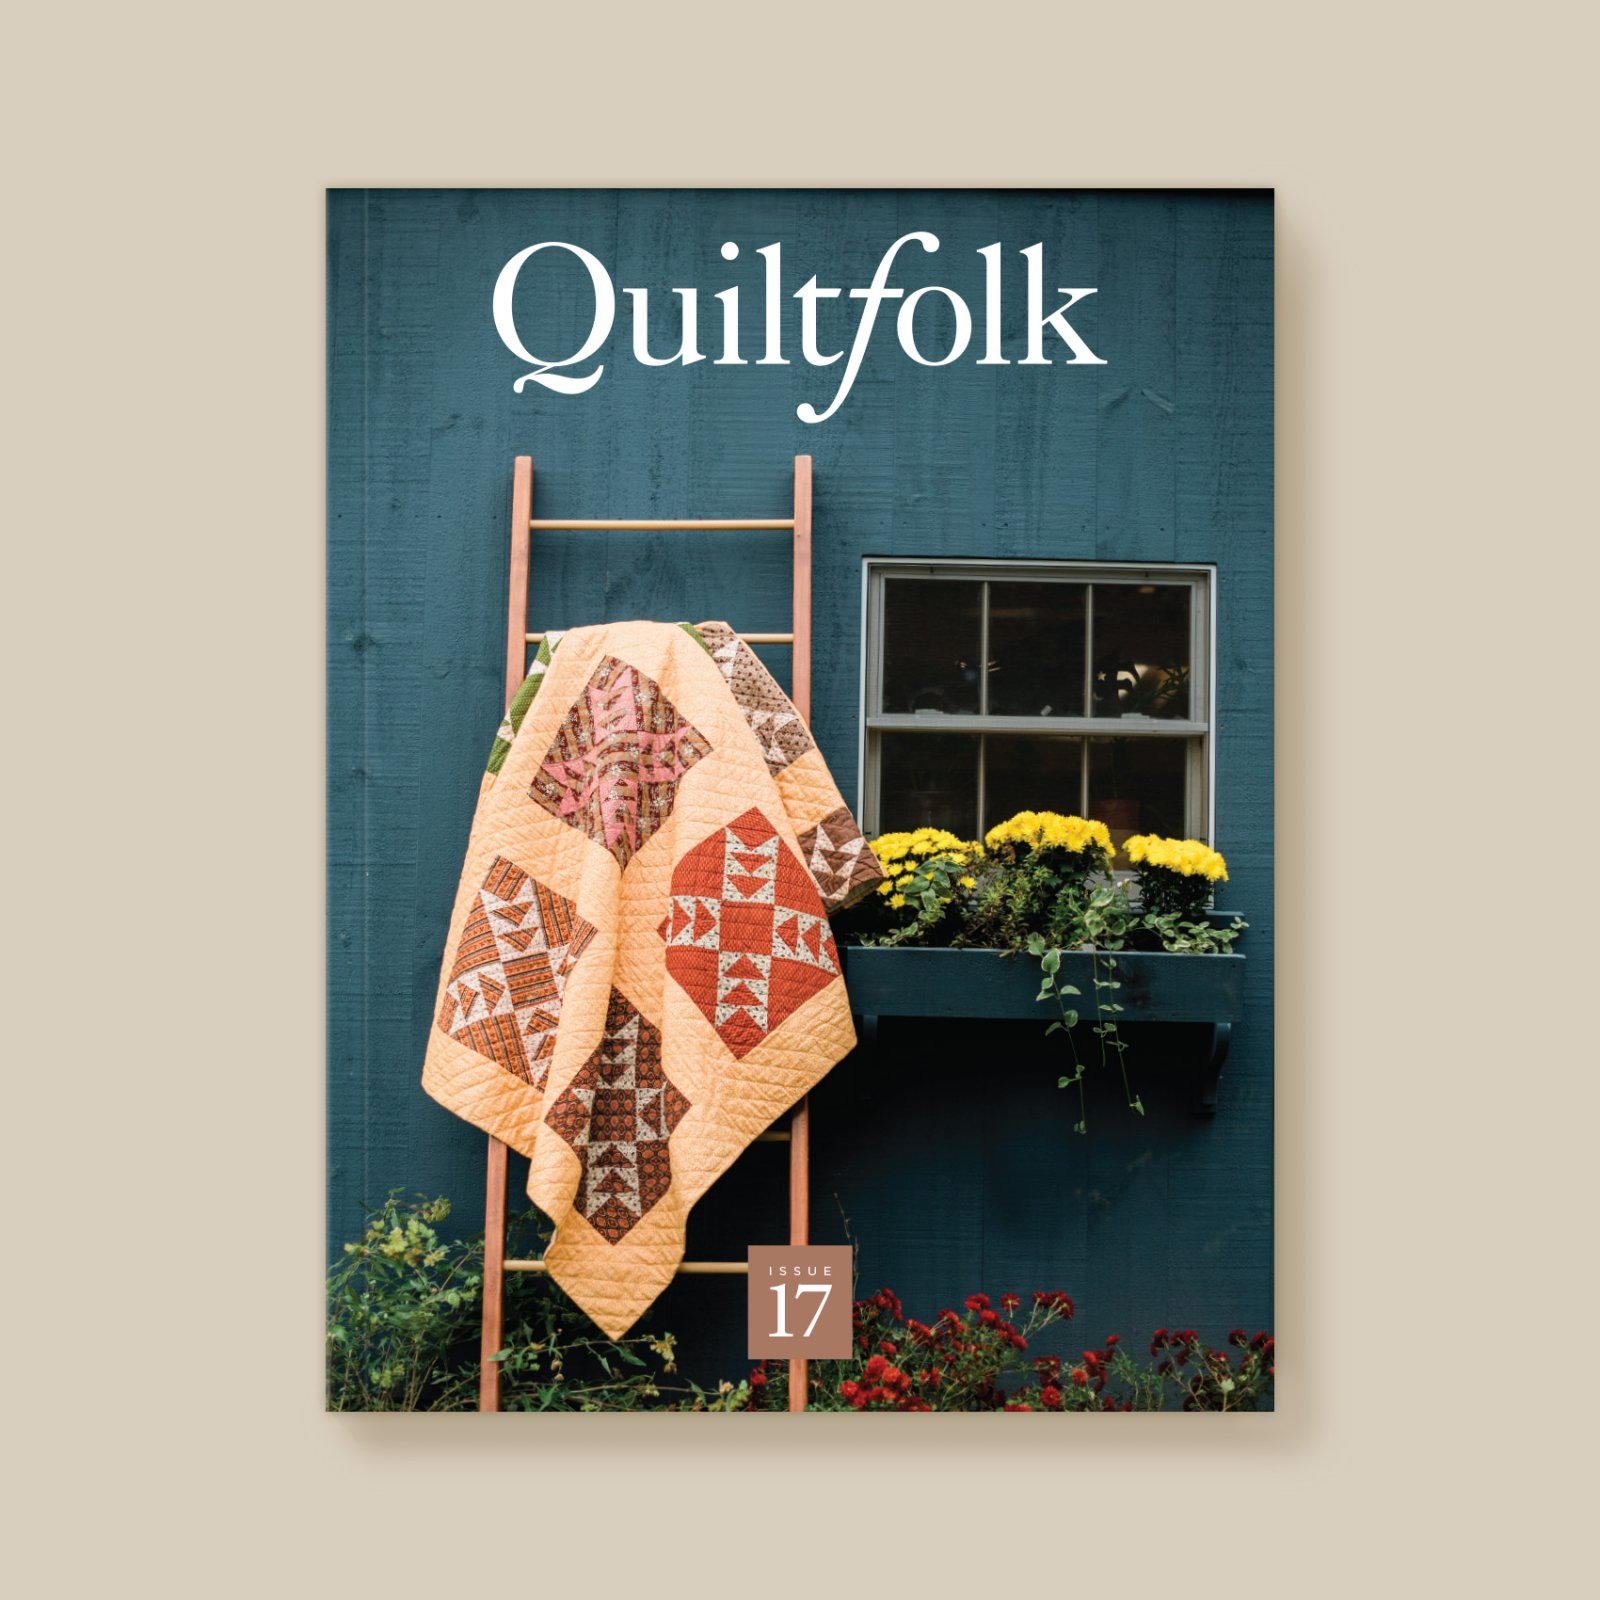 Quiltfolk - Issue 17 - Connecticut